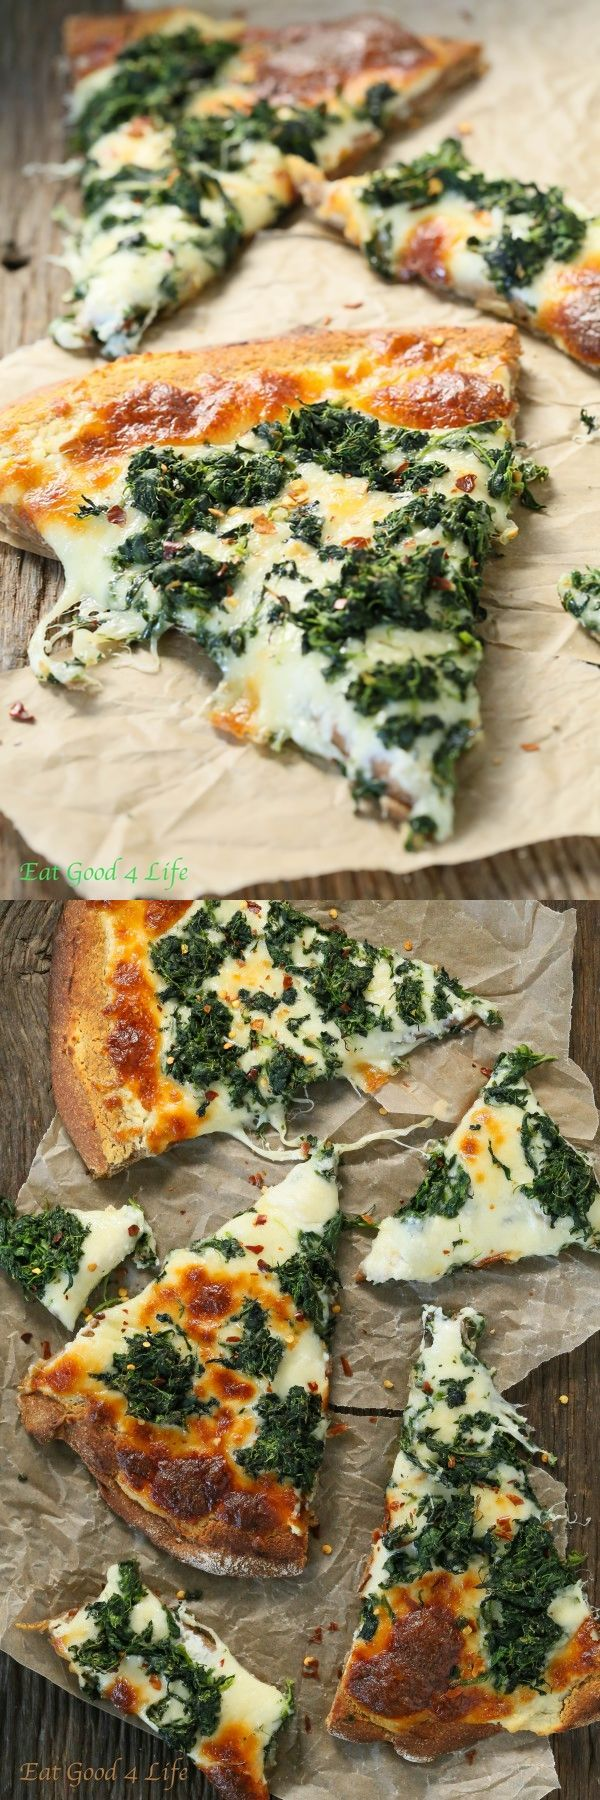 Try it as bites. 4 heads Garlic. 1 Pepper flakes. 2 Pizza dough, whole wheat. 4 tsp Olive oil. 32 oz Mozzarella cheese, part skim. 16 oz Ricotta cheese. 20 oz Cascadian farm frozen spinach, thawed and liquid squeezed.